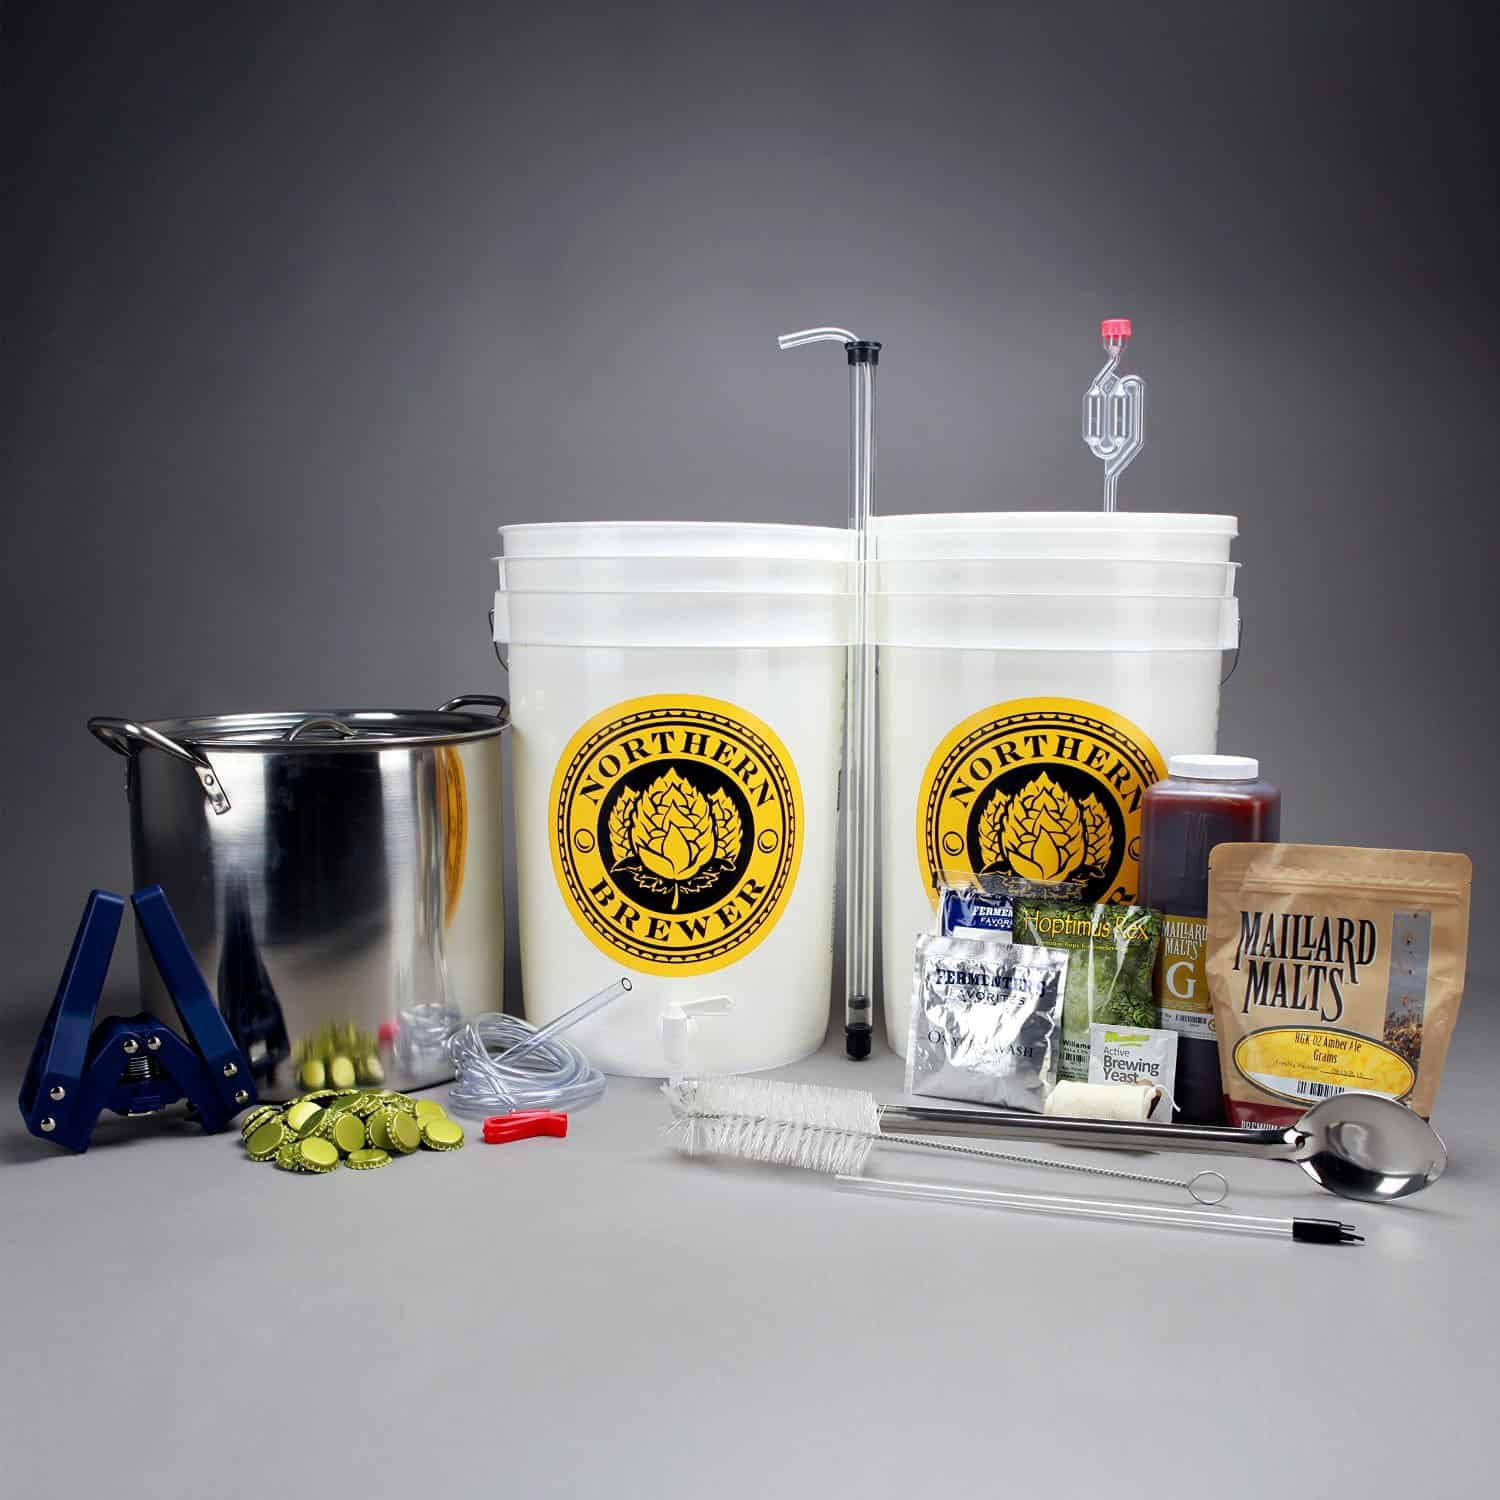 Top 5 Best Home Brew Kits Reviews - 52 Brews